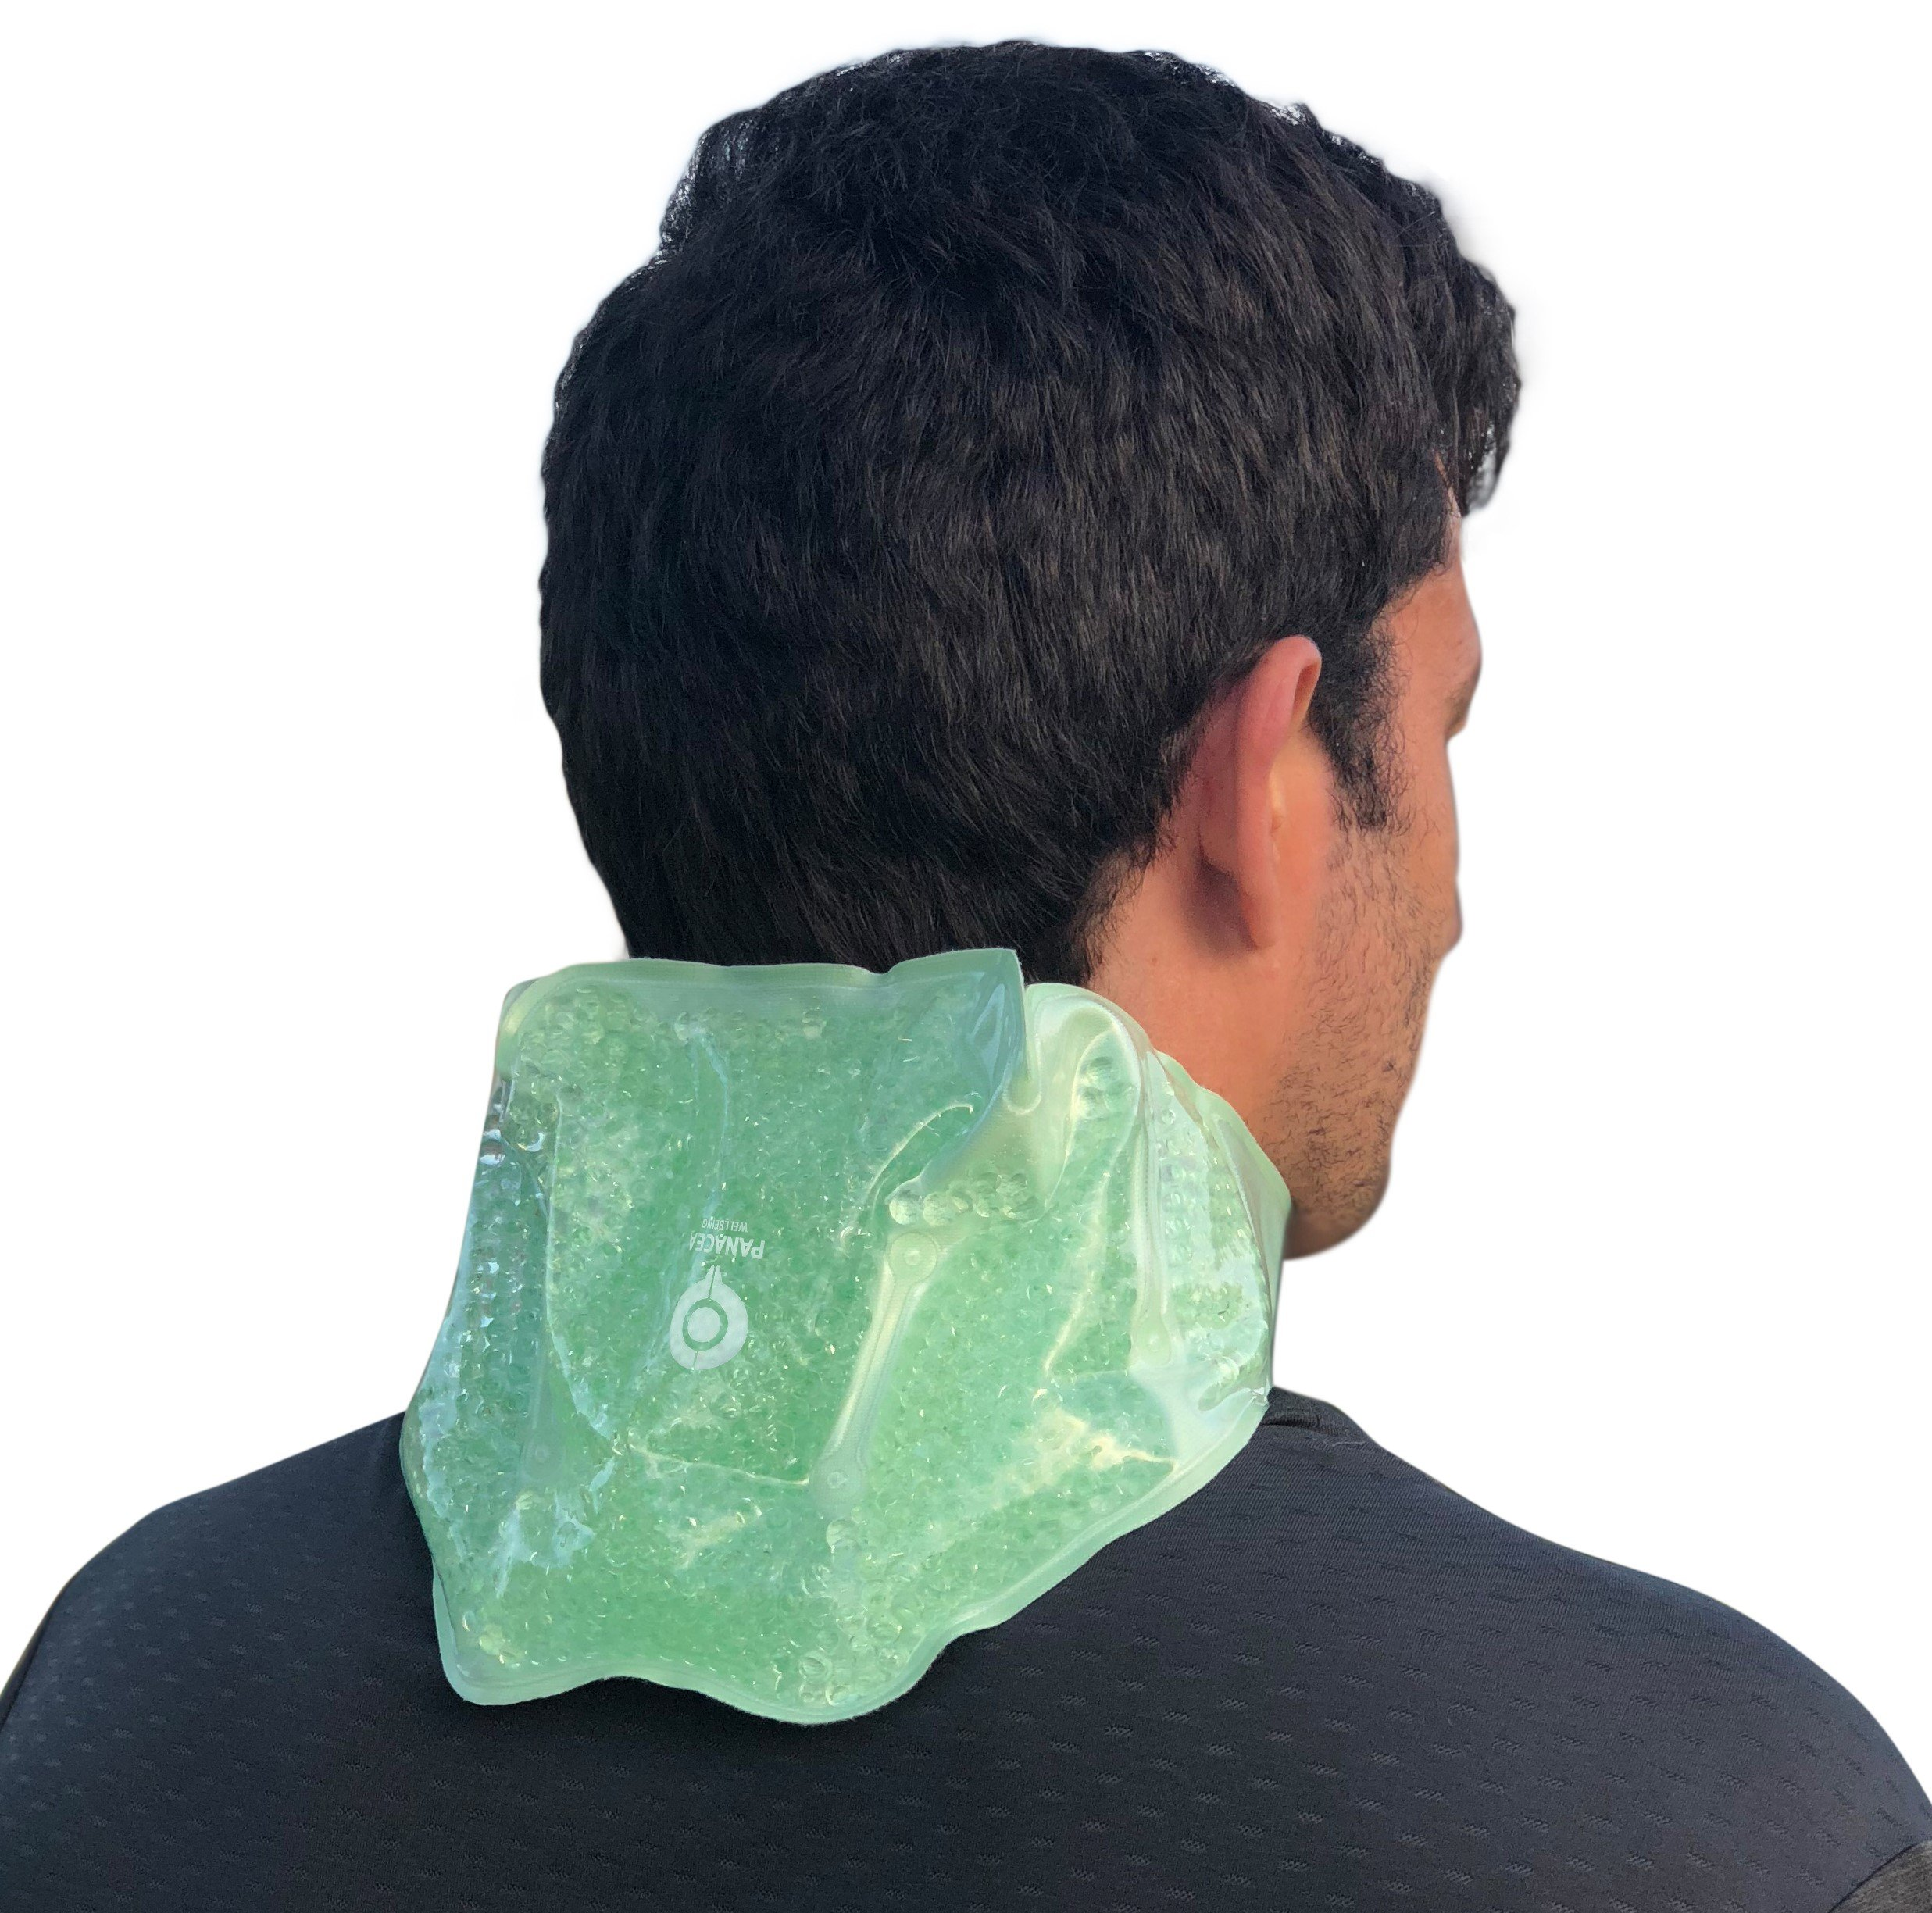 Neck & Shoulder Hot / Cold Therapy Gel Bead Wrap | Microwaveable, Freezable and Reusable | Ideal for Relieving Swelling and Inflamation, Muscle Aches, Stiffness, Arthritis Pain, and Sports Injuries